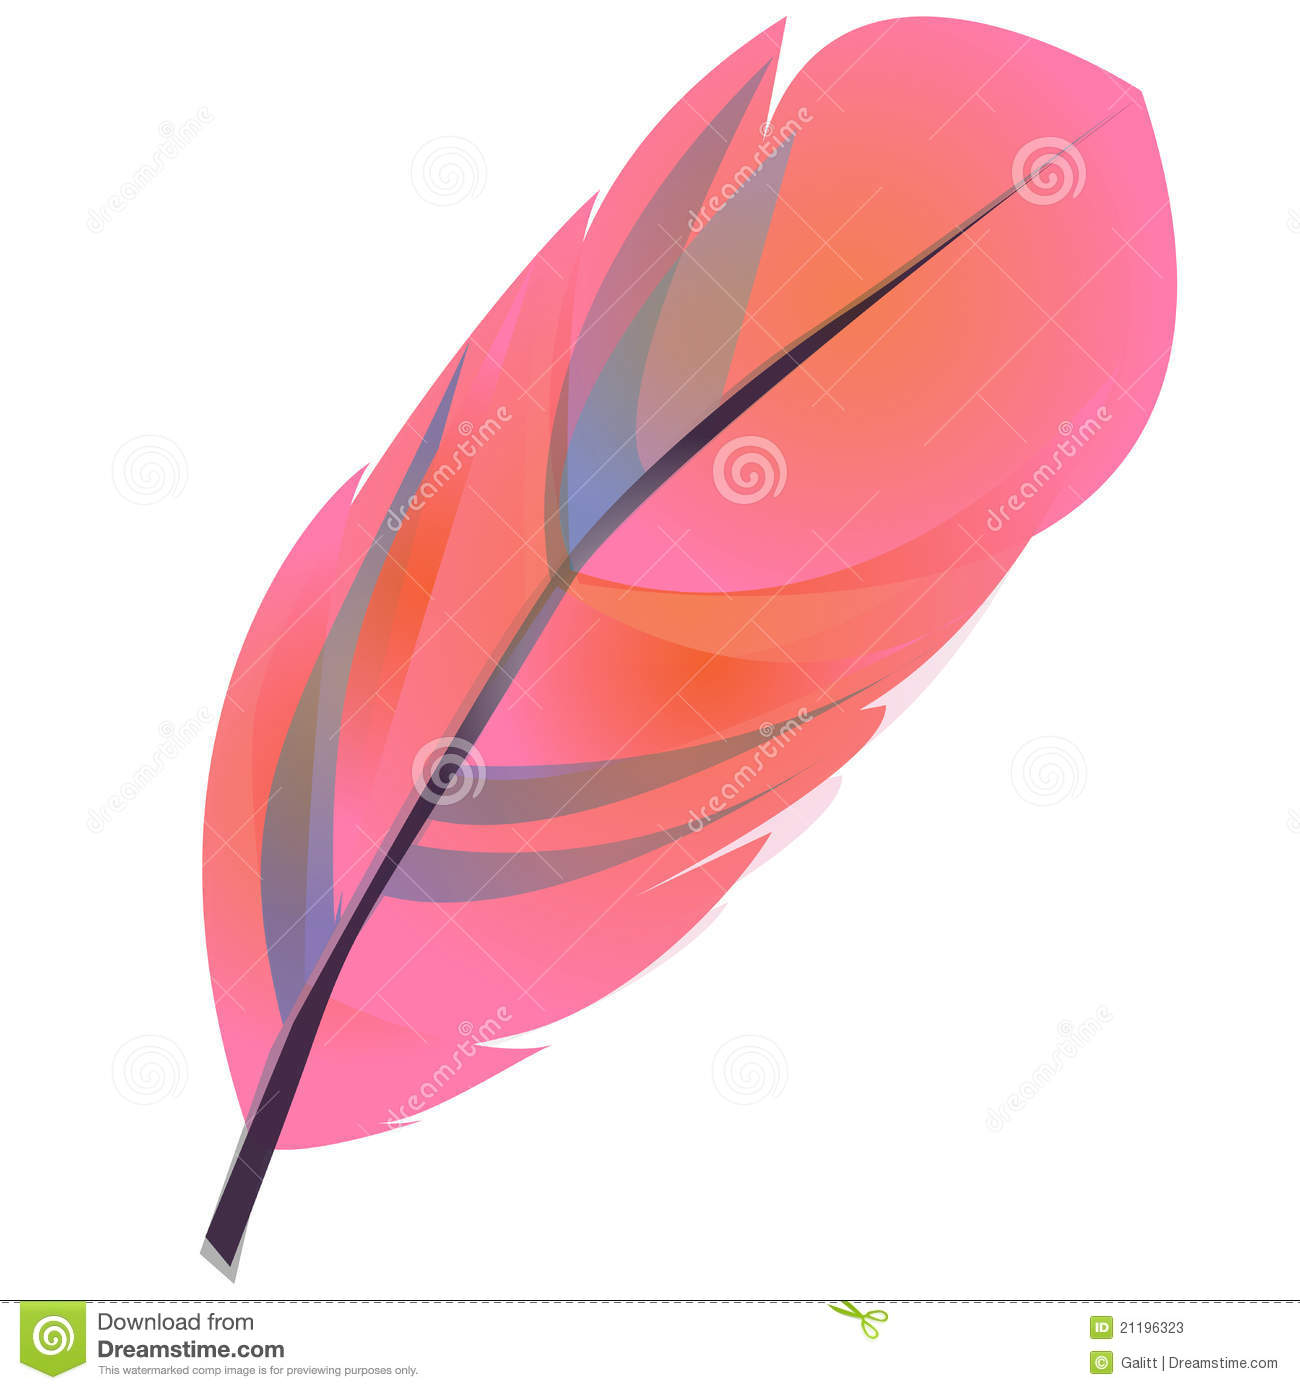 Feather Clipart Stock Photos - Image: 21196323